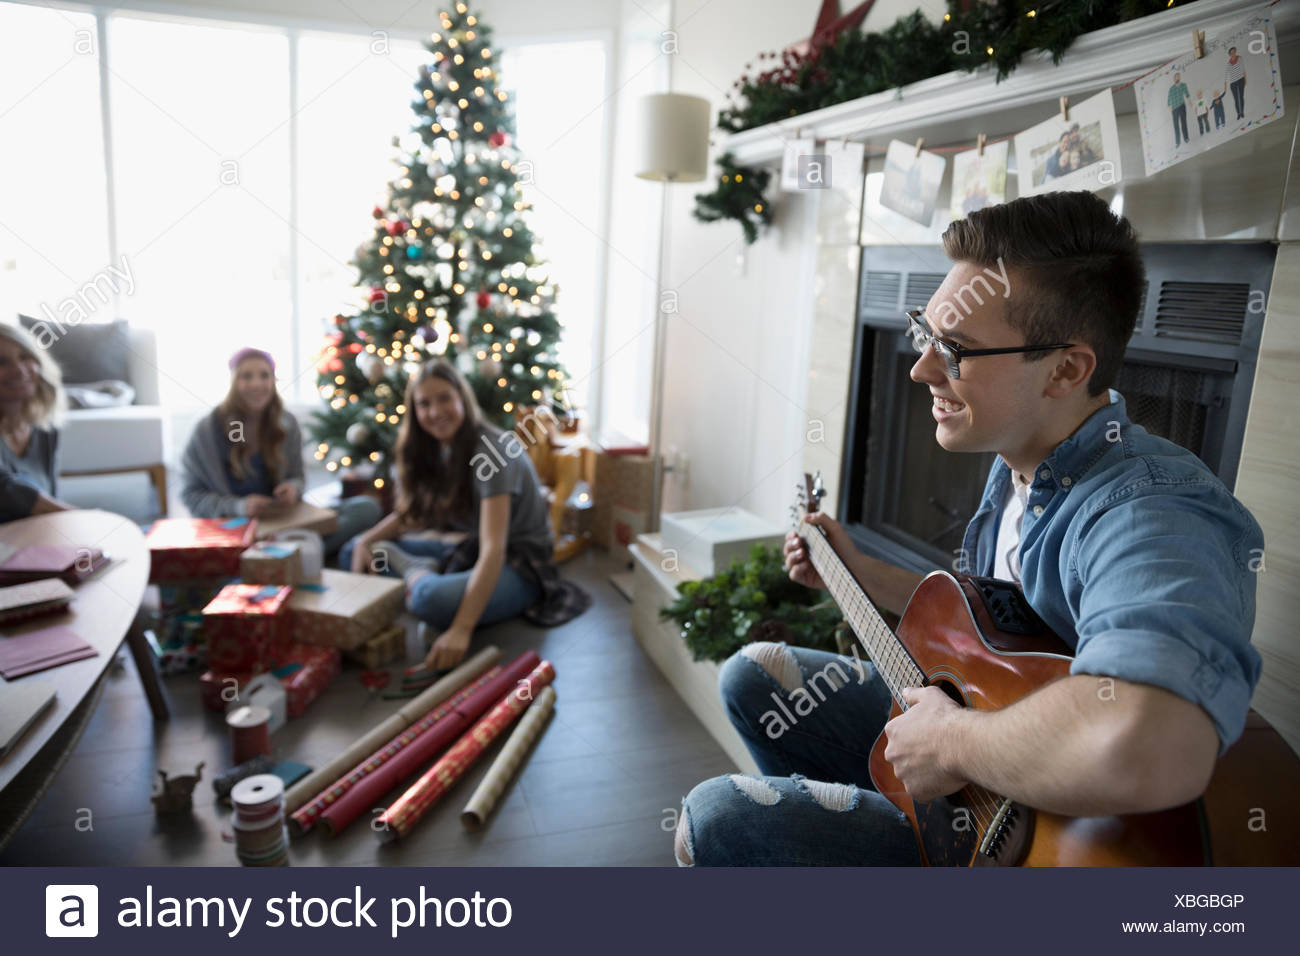 smiling young man playing guitar while sisters wrap christmas gifts in living room with christmas tree